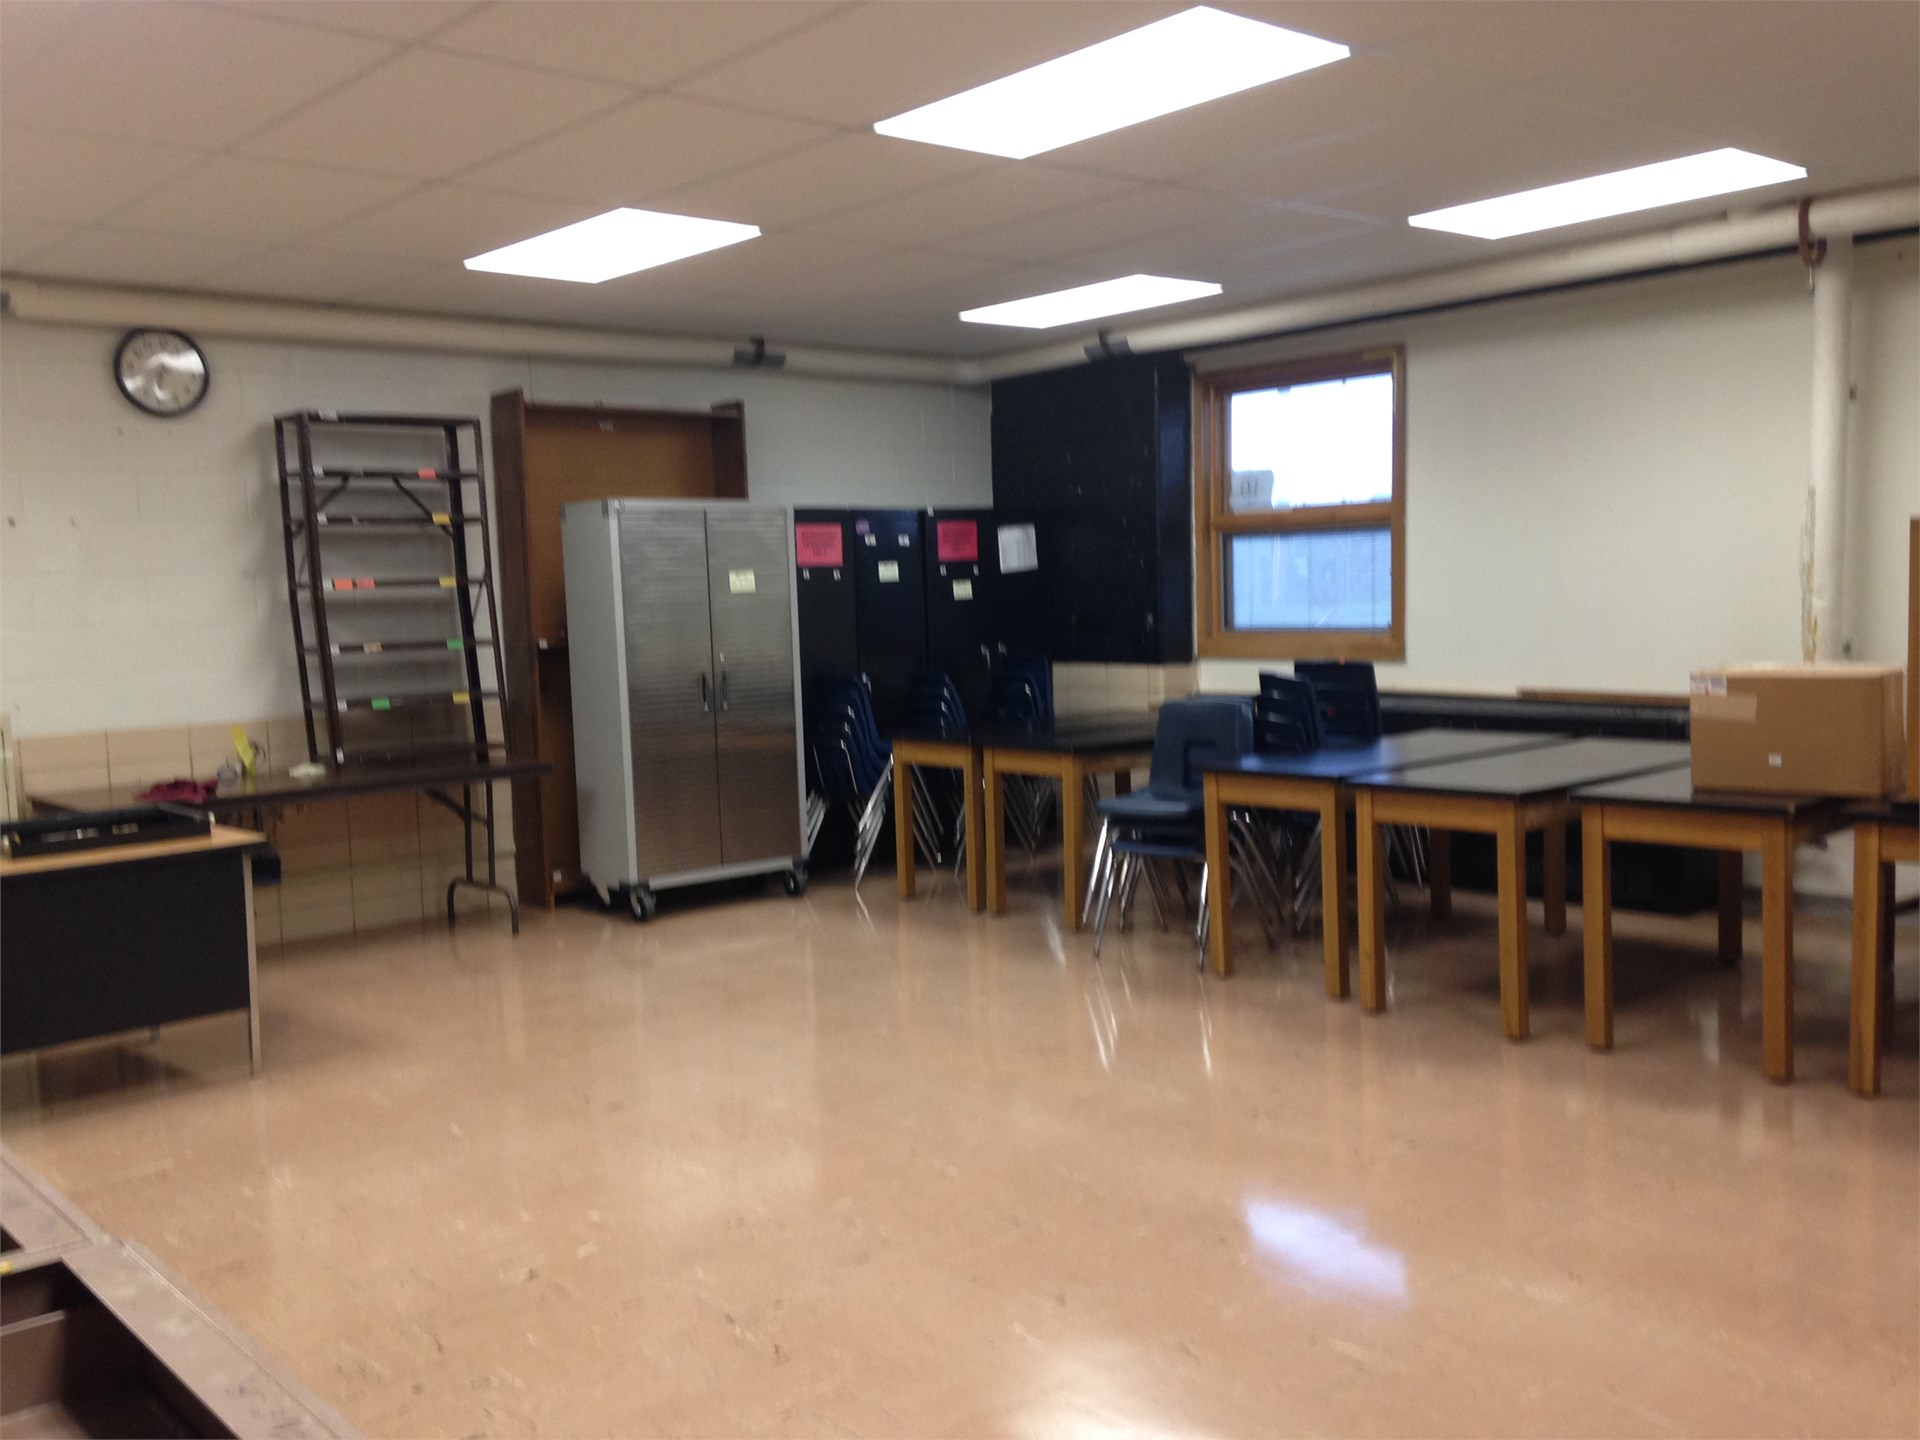 Biology Room upon completion